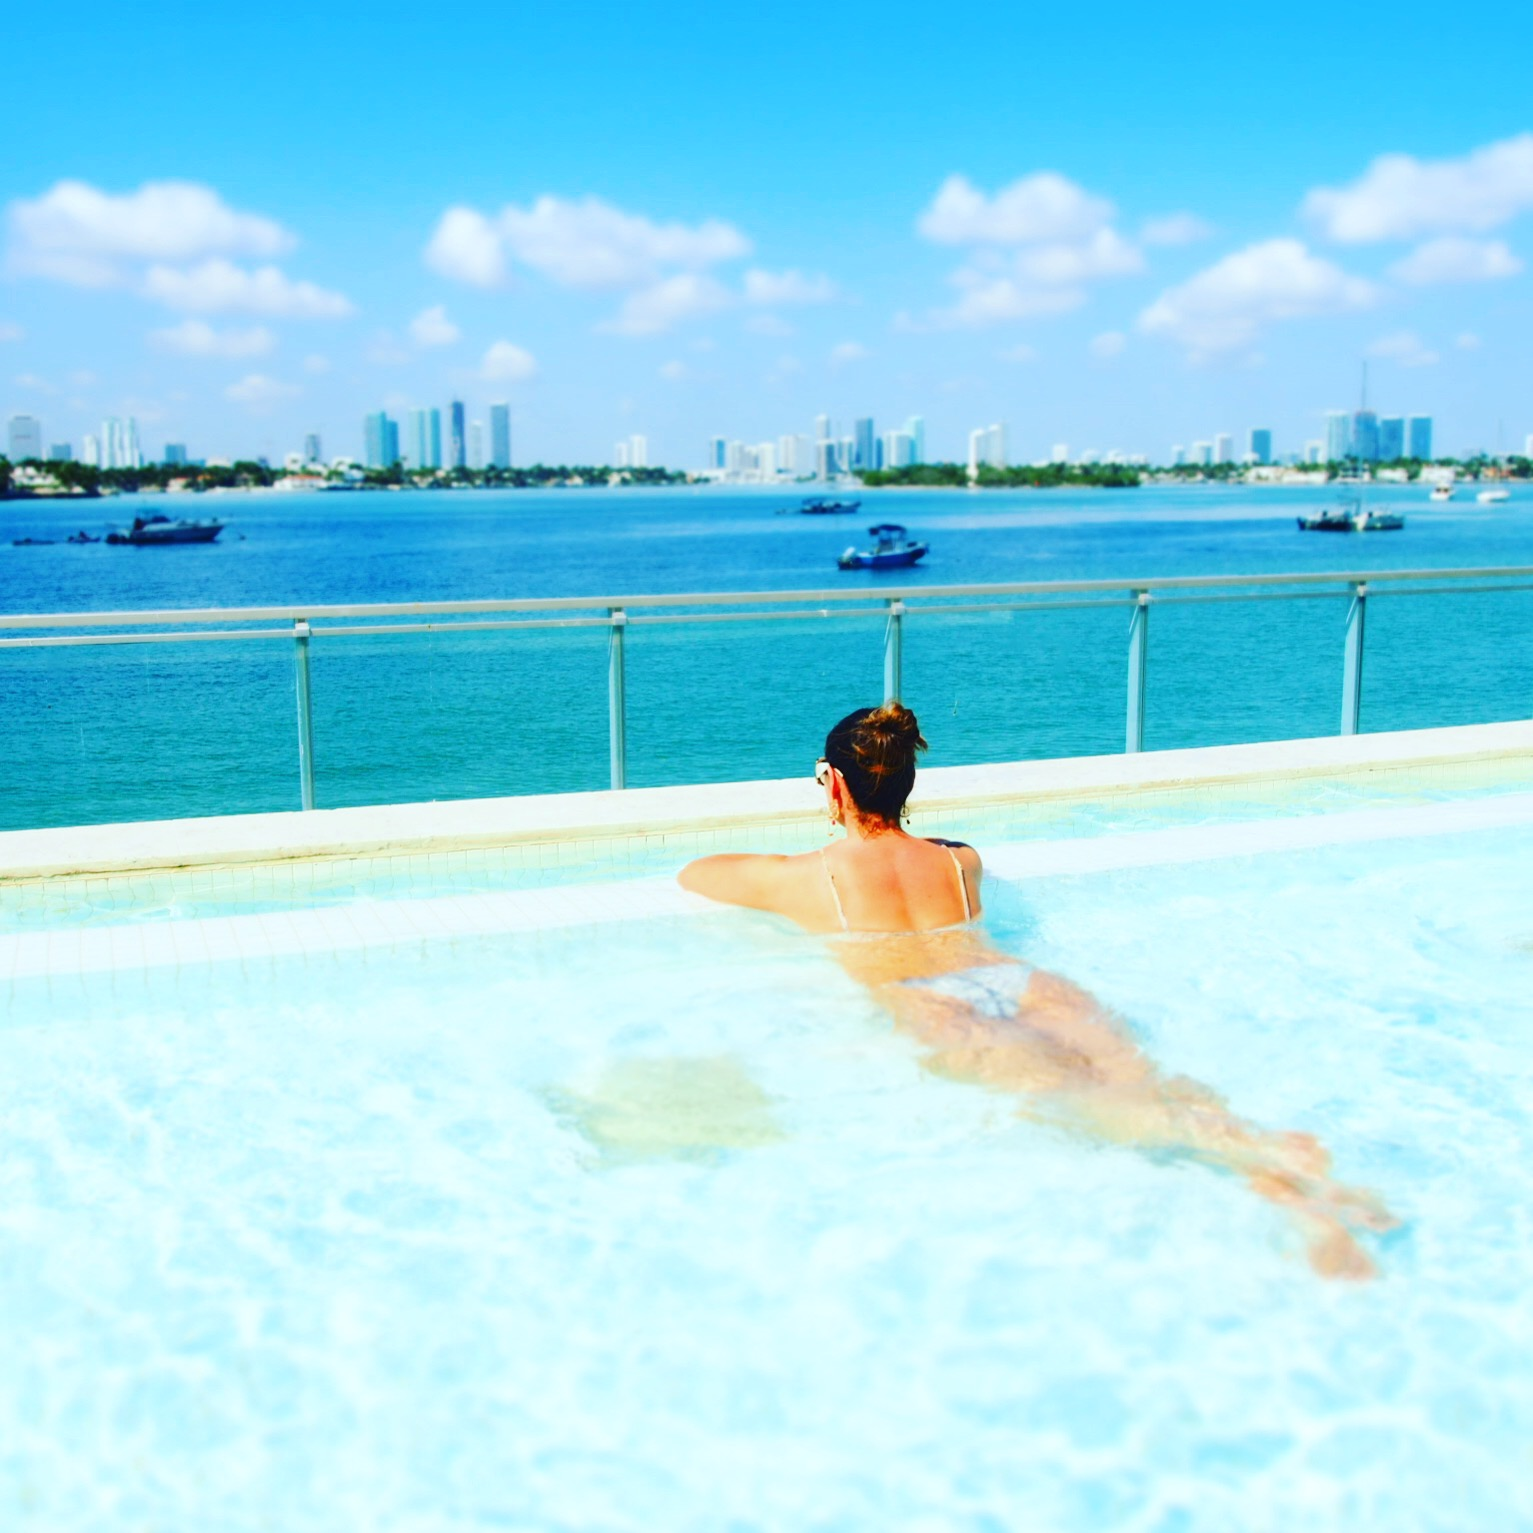 Claire Elizabeth lying in the plunge pool overlooking Biscayne Bay at the Mondrian Hotel South Beach wearing a Melissa Odabash bikini